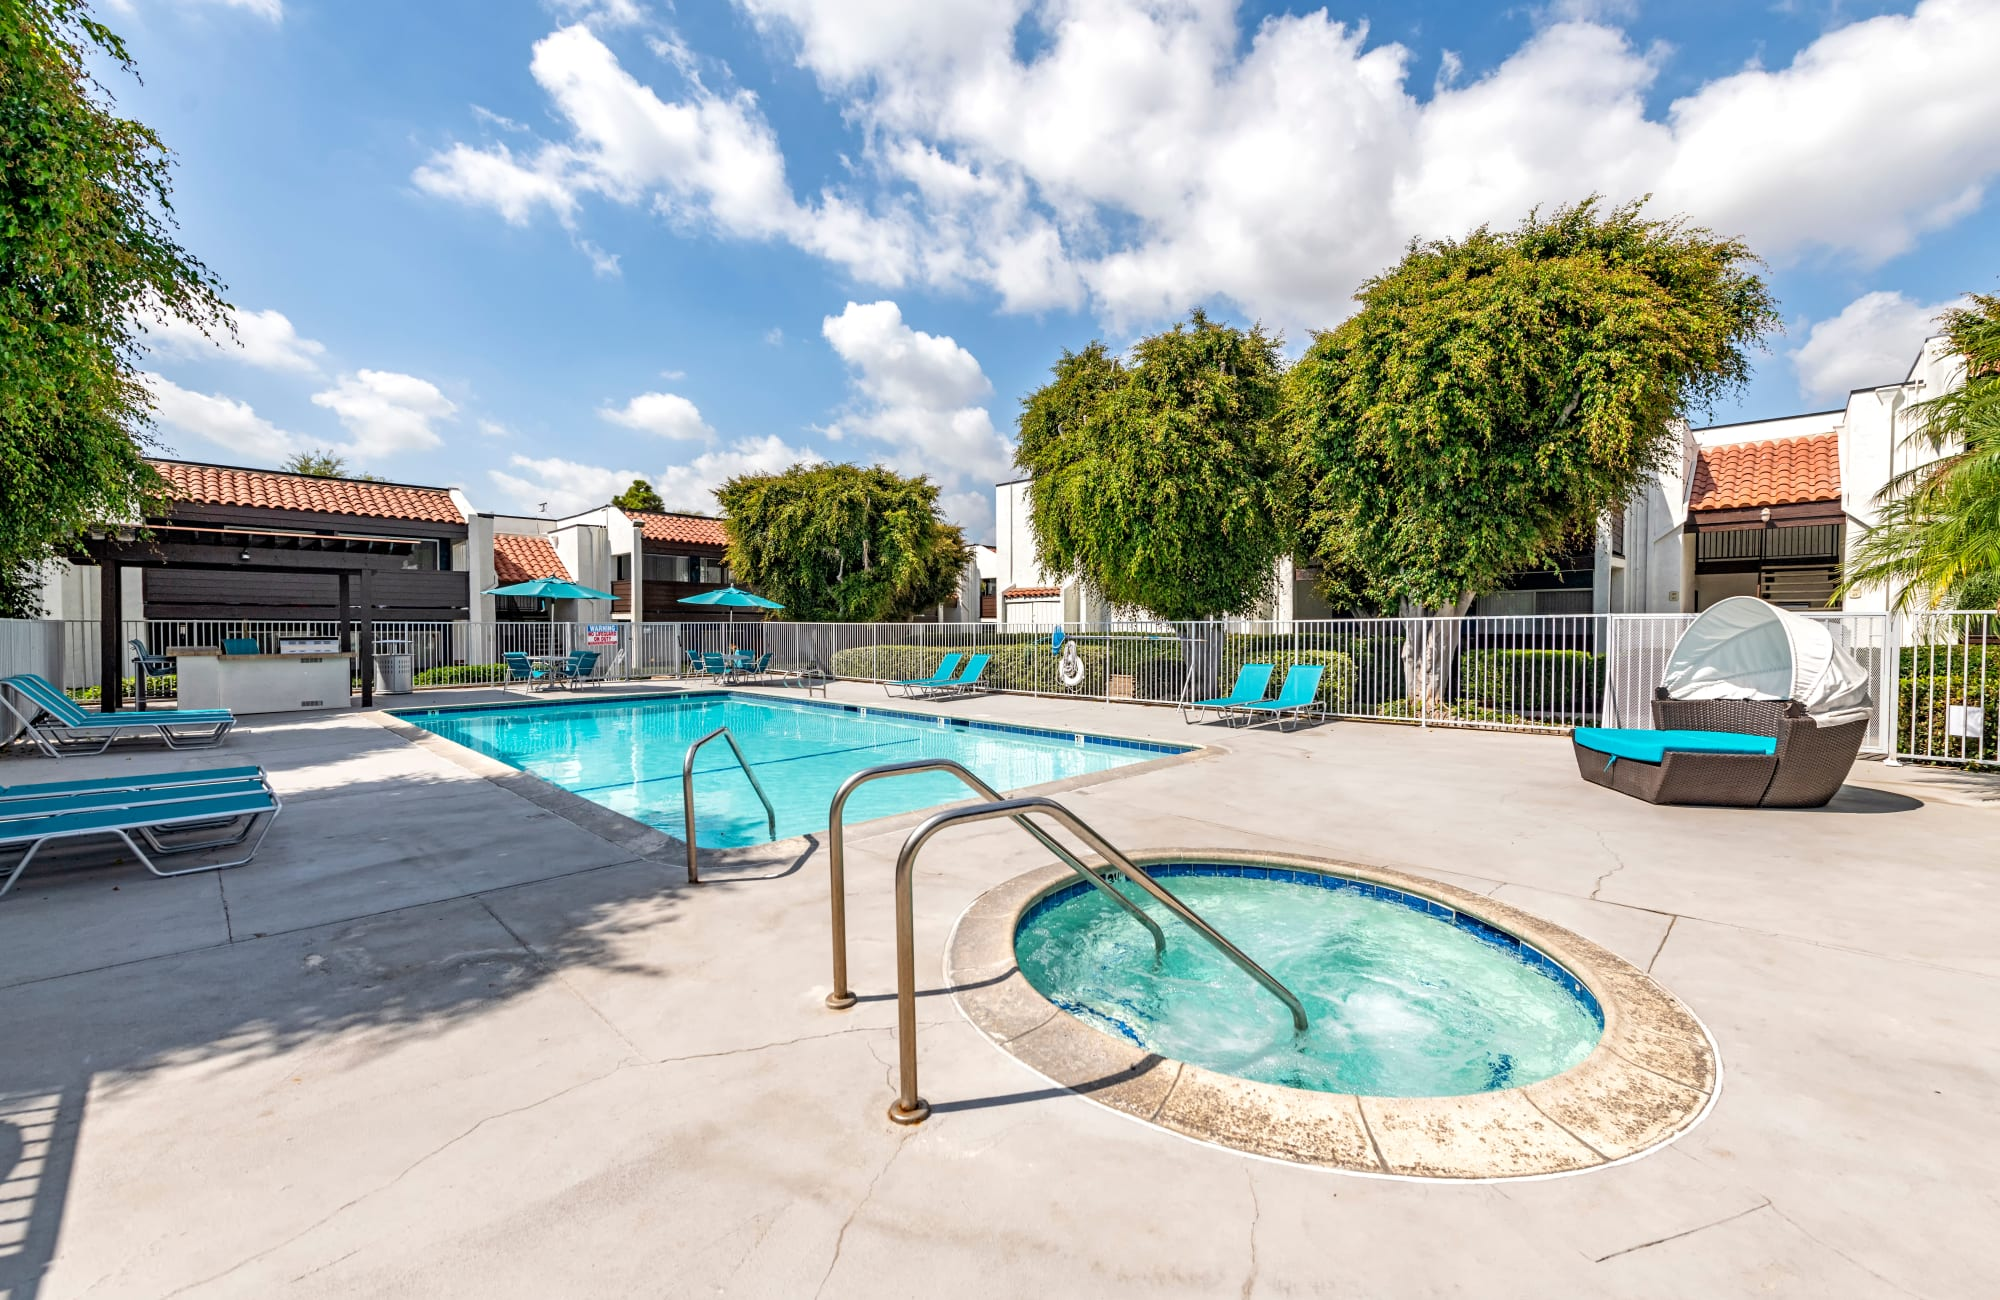 Accessibility statement at Kendallwood Apartments in Whittier, California